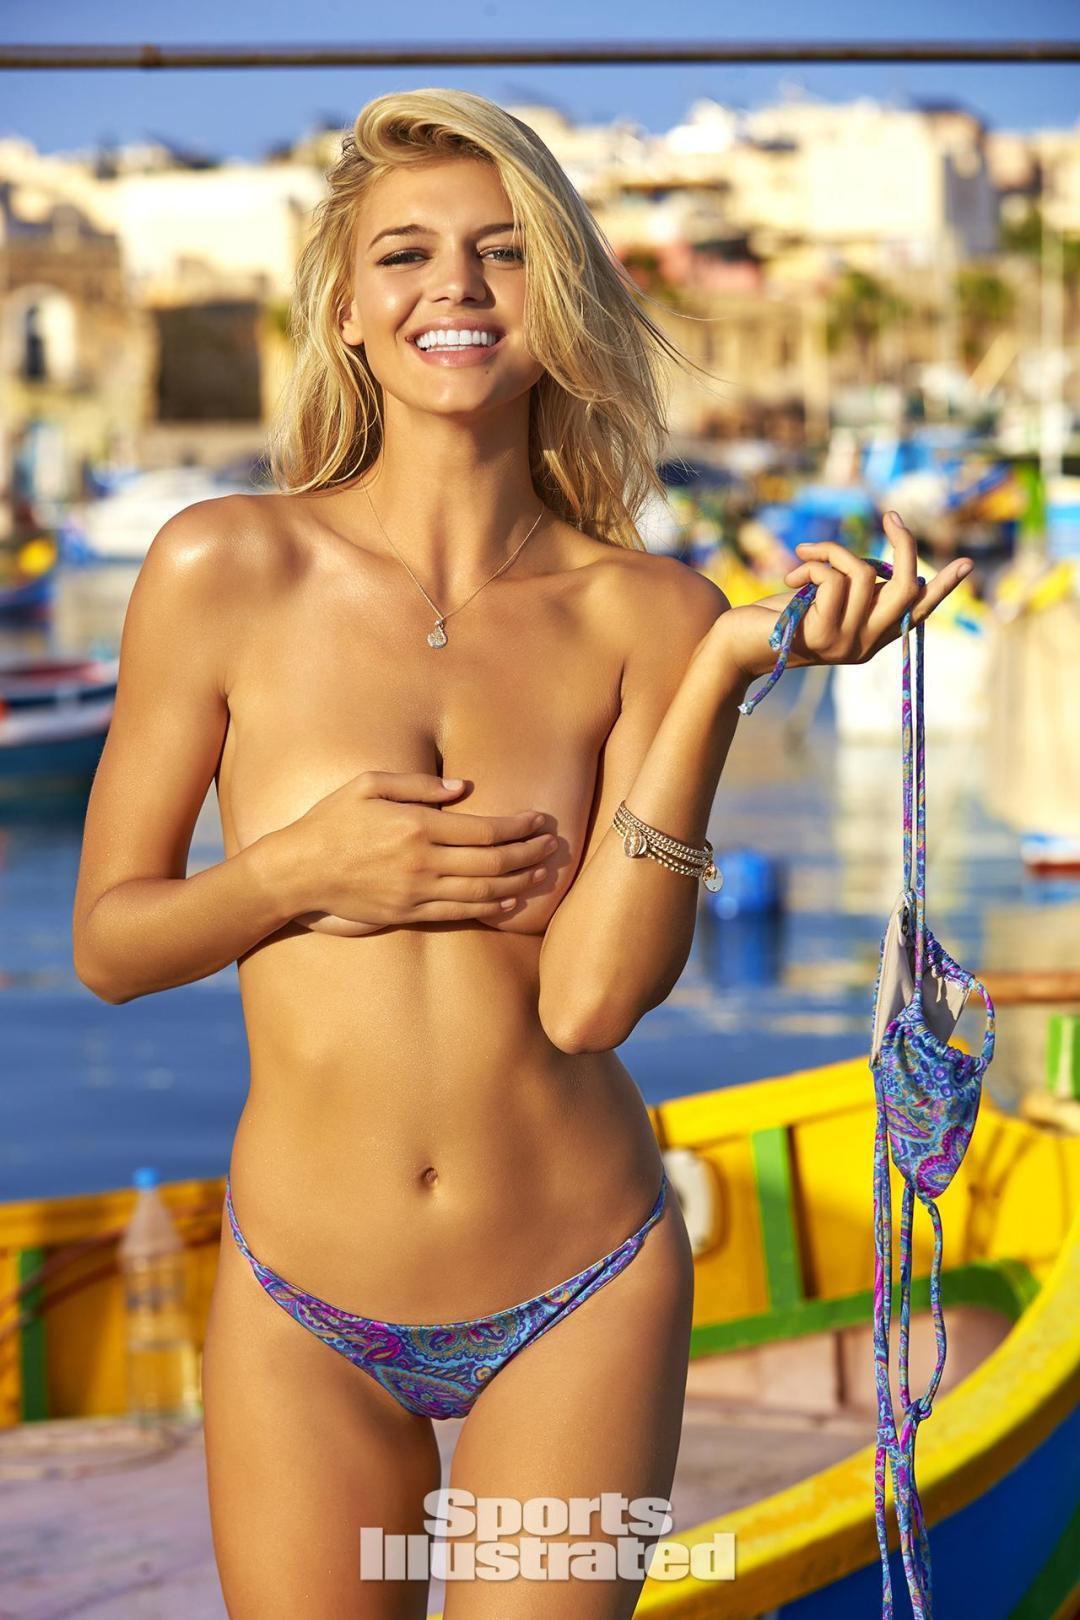 baywatch babe kelly-rohrbach shines in sexy 2016-sports-illustrated swimsuit edition 12